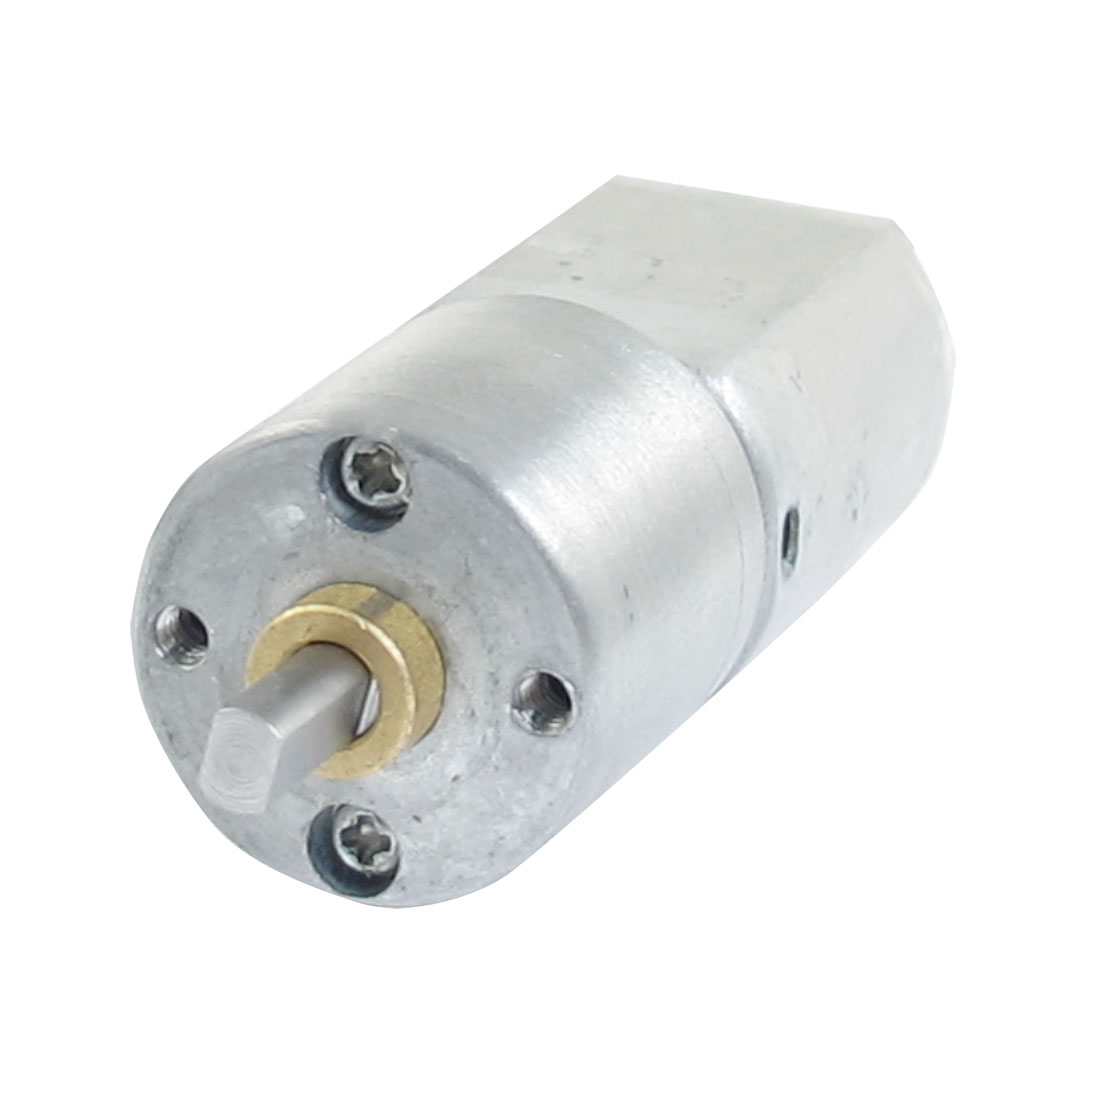 DC 6V 68RPM 2 Terminals Power 130 Electric Gear Motor